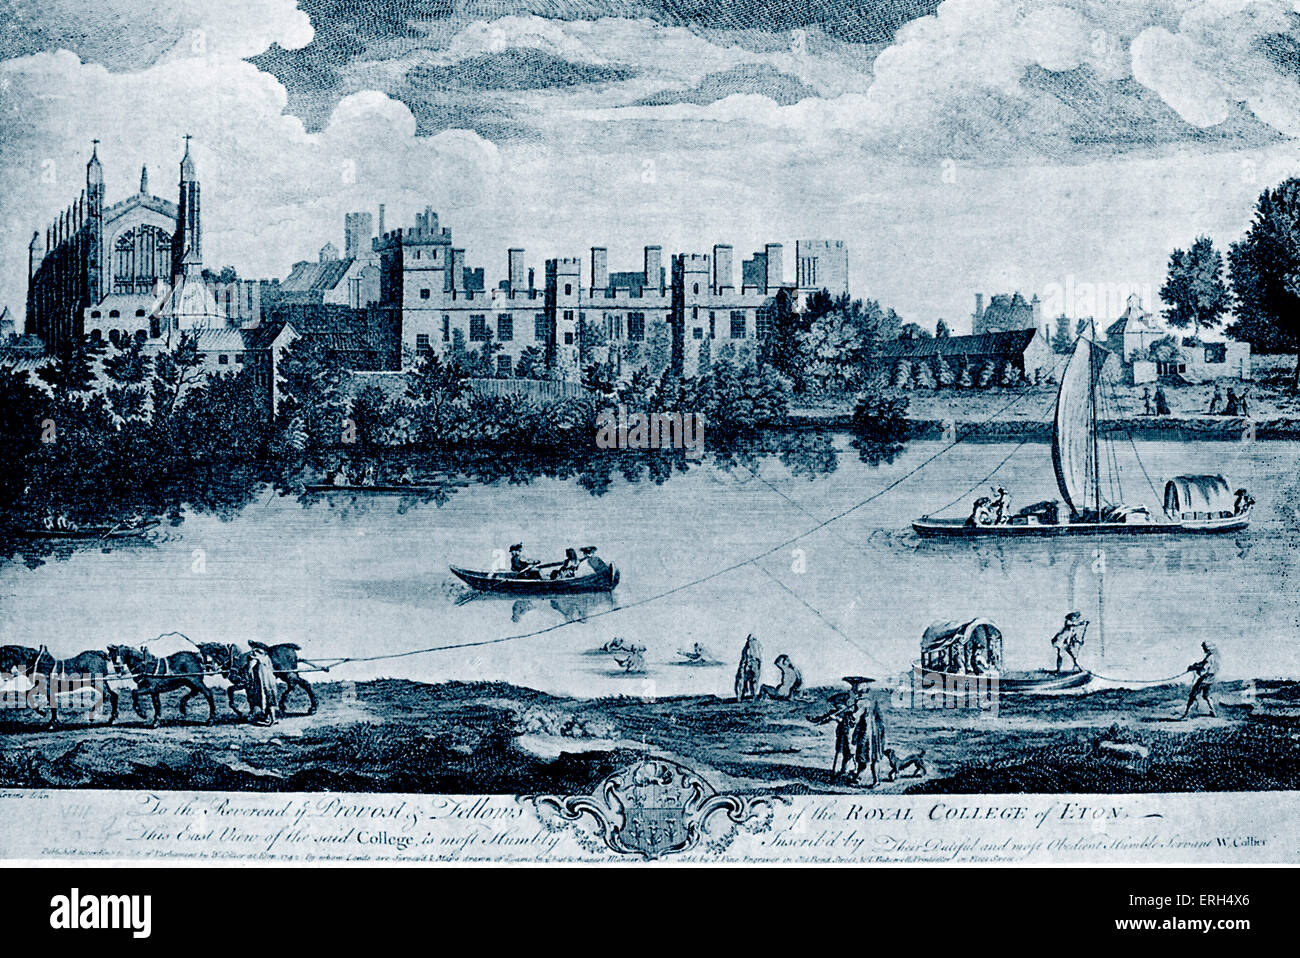 Eton - 1742. Drawing by A. Cozens, engraving by J. Pine. Copy. Tinted version. - Stock Image